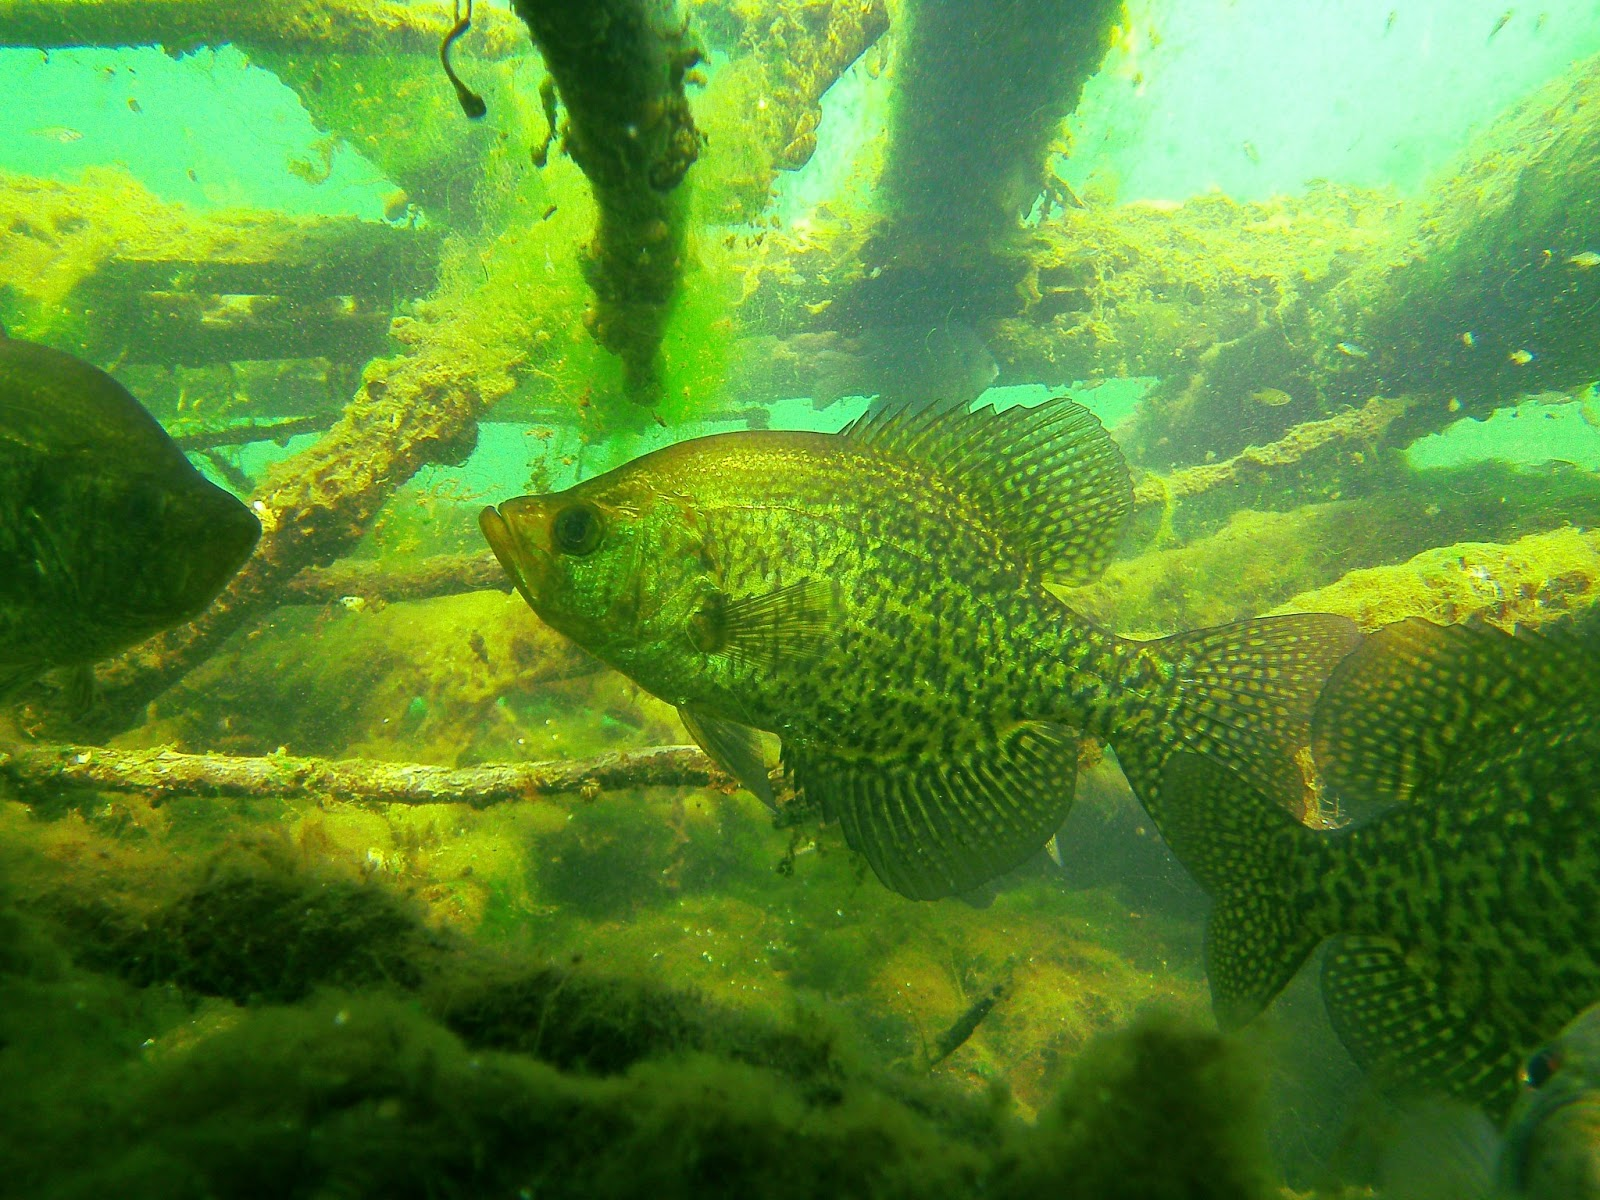 Crappie Photo And Wallpaper Cute Crappie Pictures